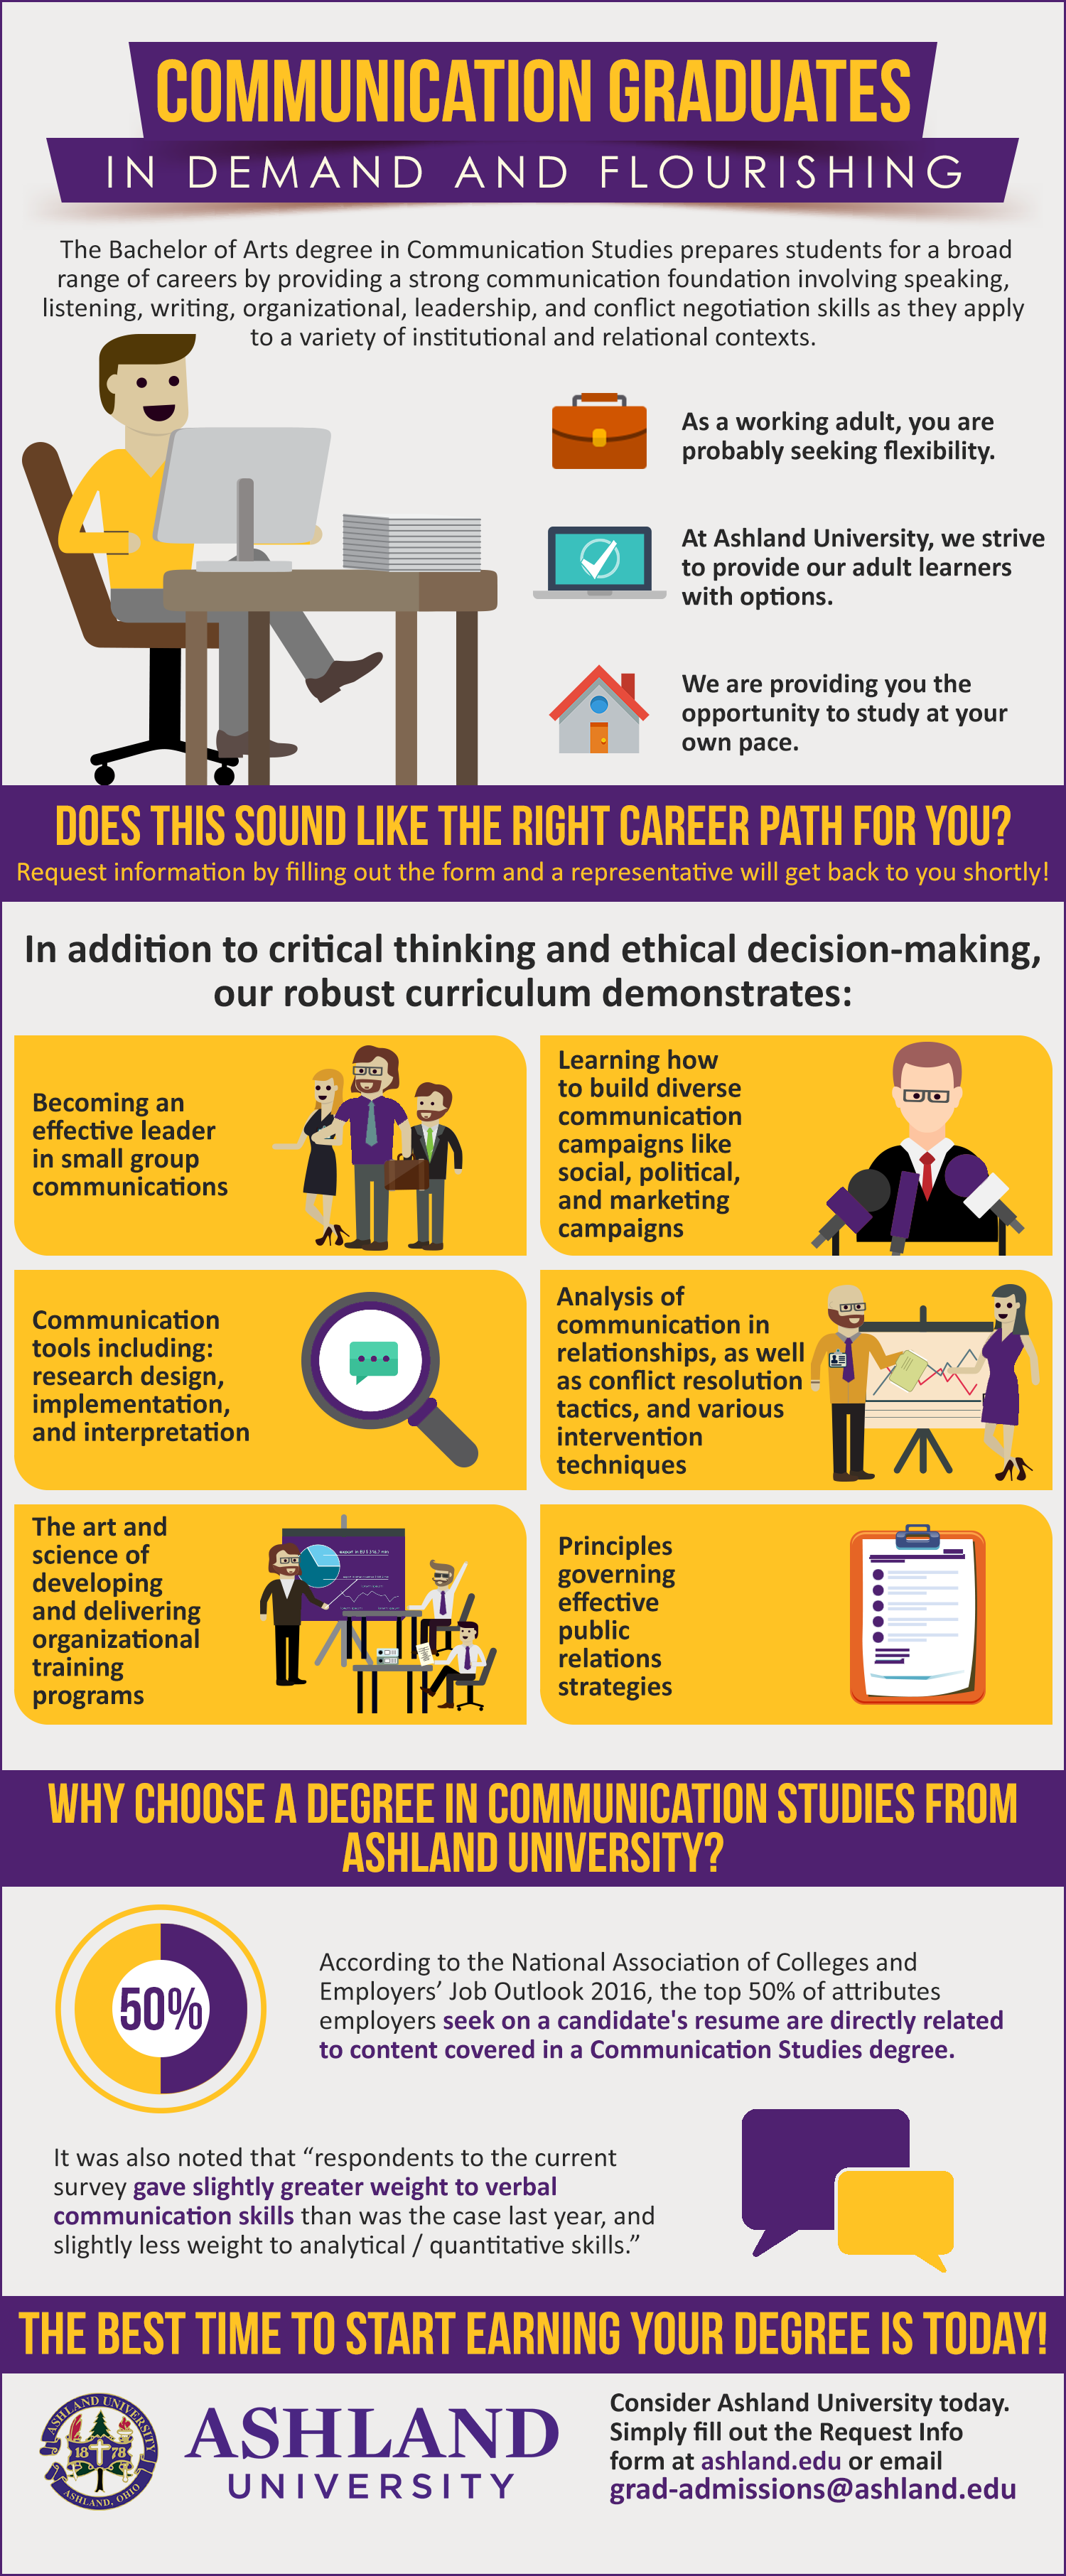 Communication Studies Degrees Are in Demand and Flourishing | Ashland University